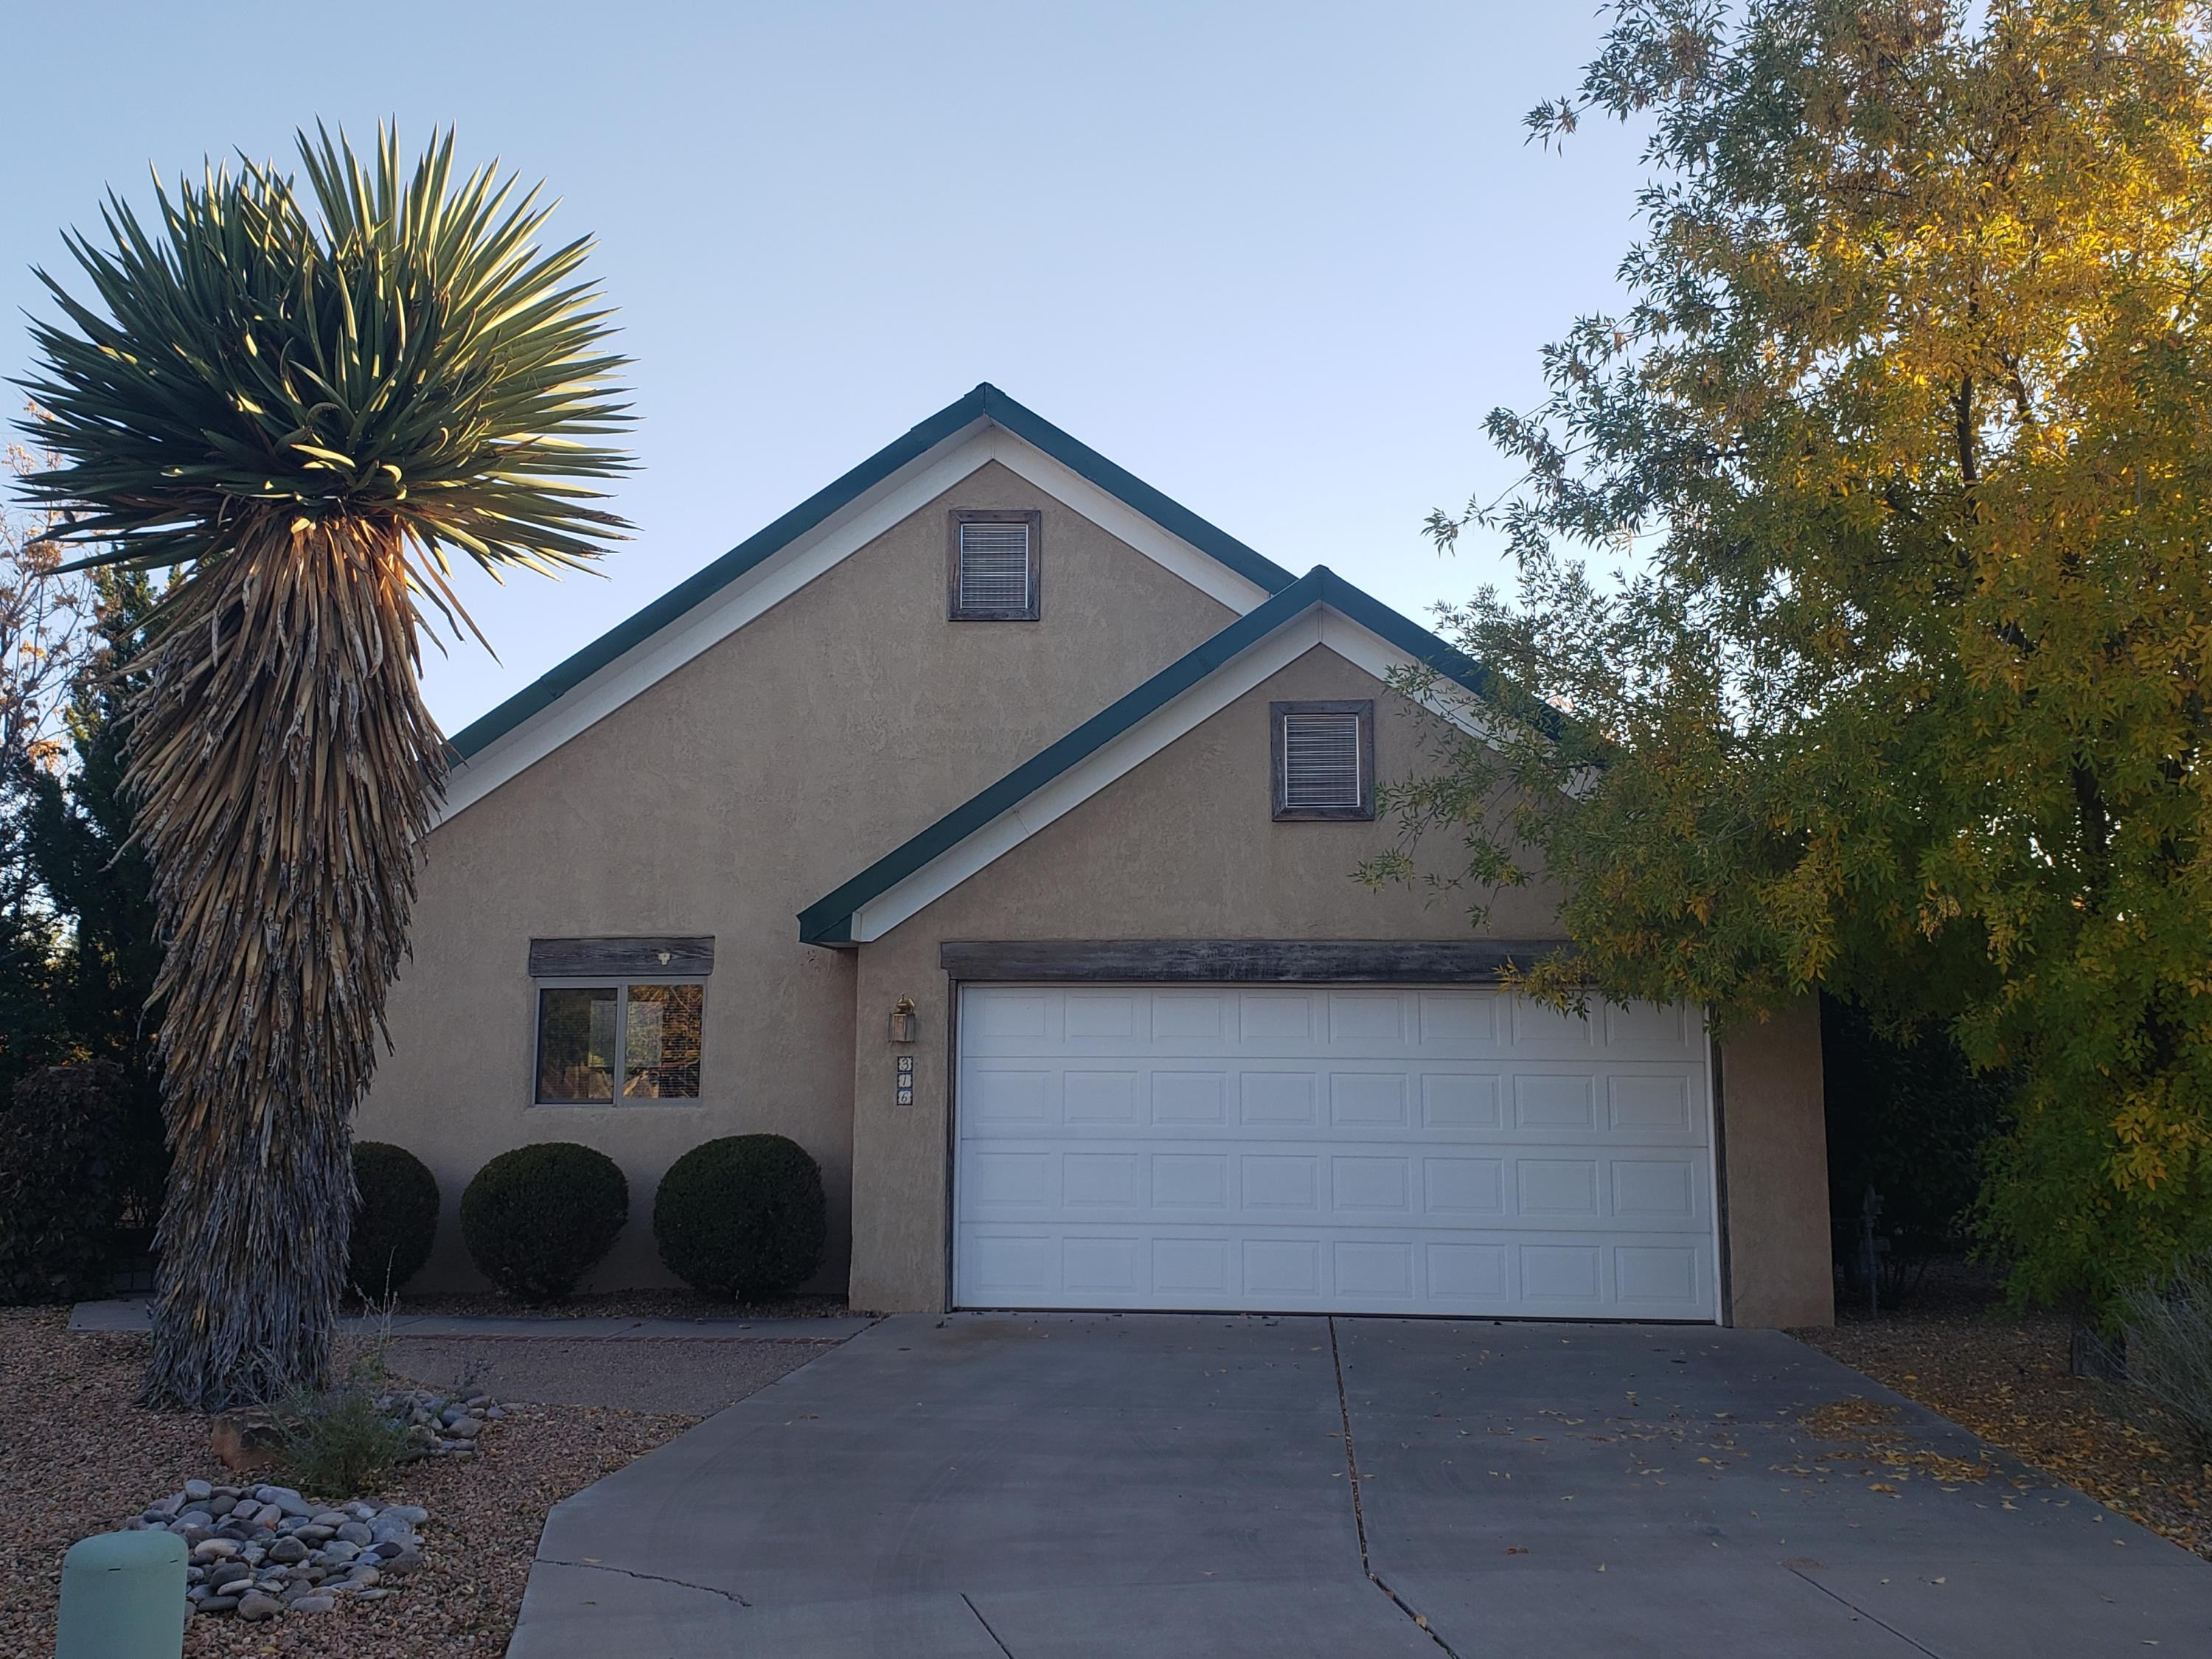 316 LA CHAMISAL Lane NW, Los Ranchos, NM 87107 - Los Ranchos, NM real estate listing